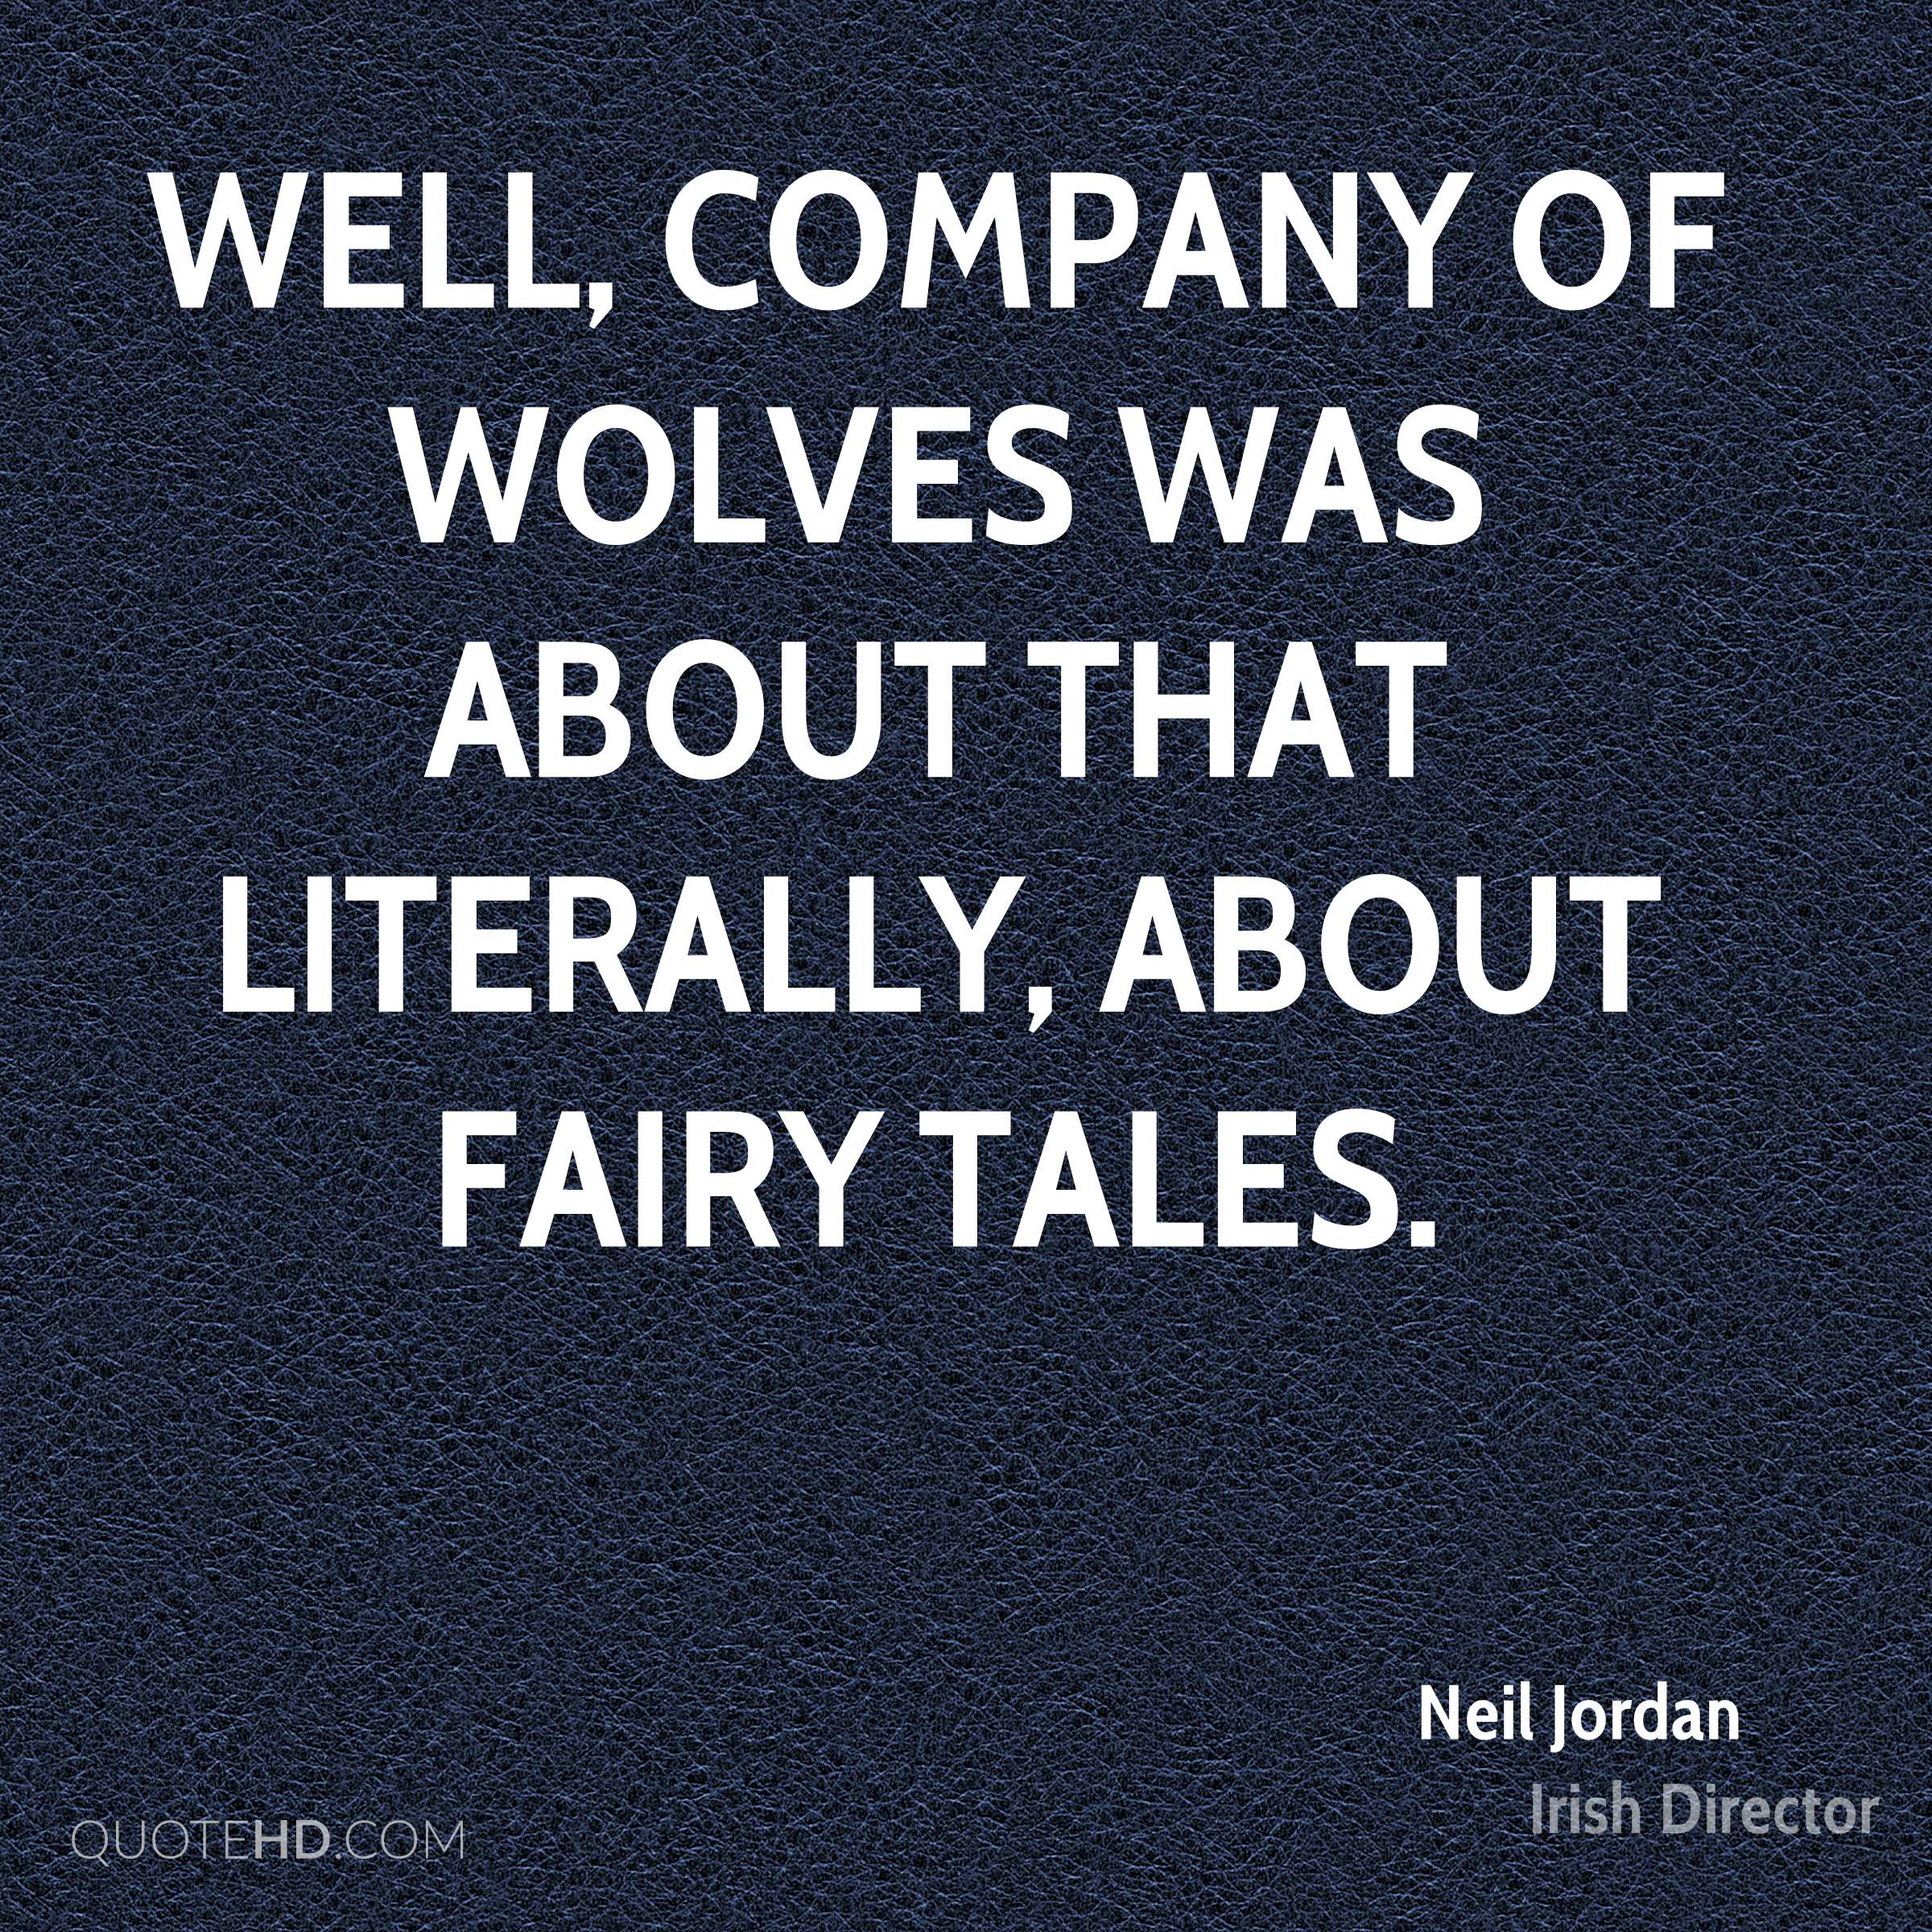 Well, Company of Wolves was about that literally, about fairy tales.